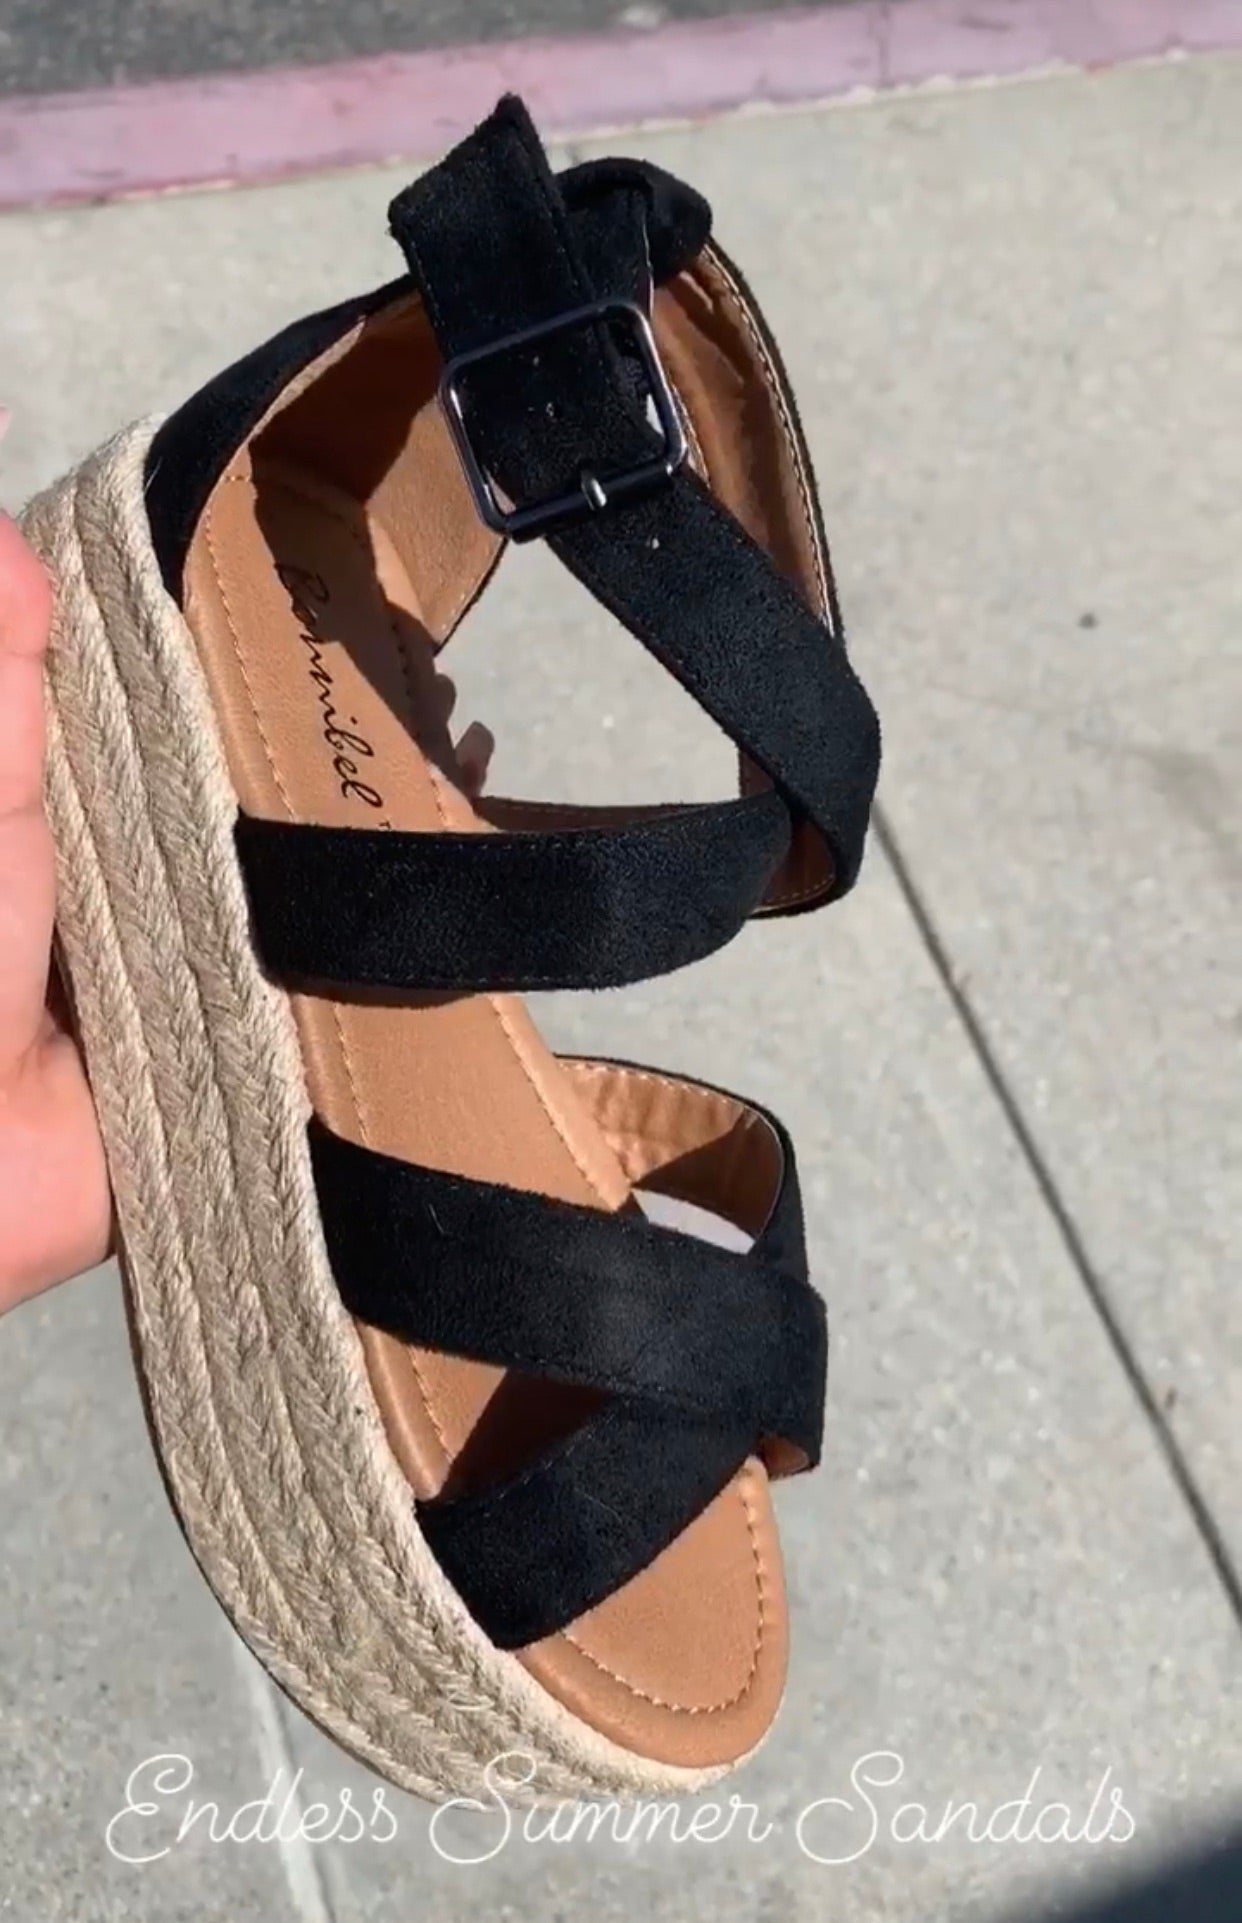 Endless Summer Sandals (Black)